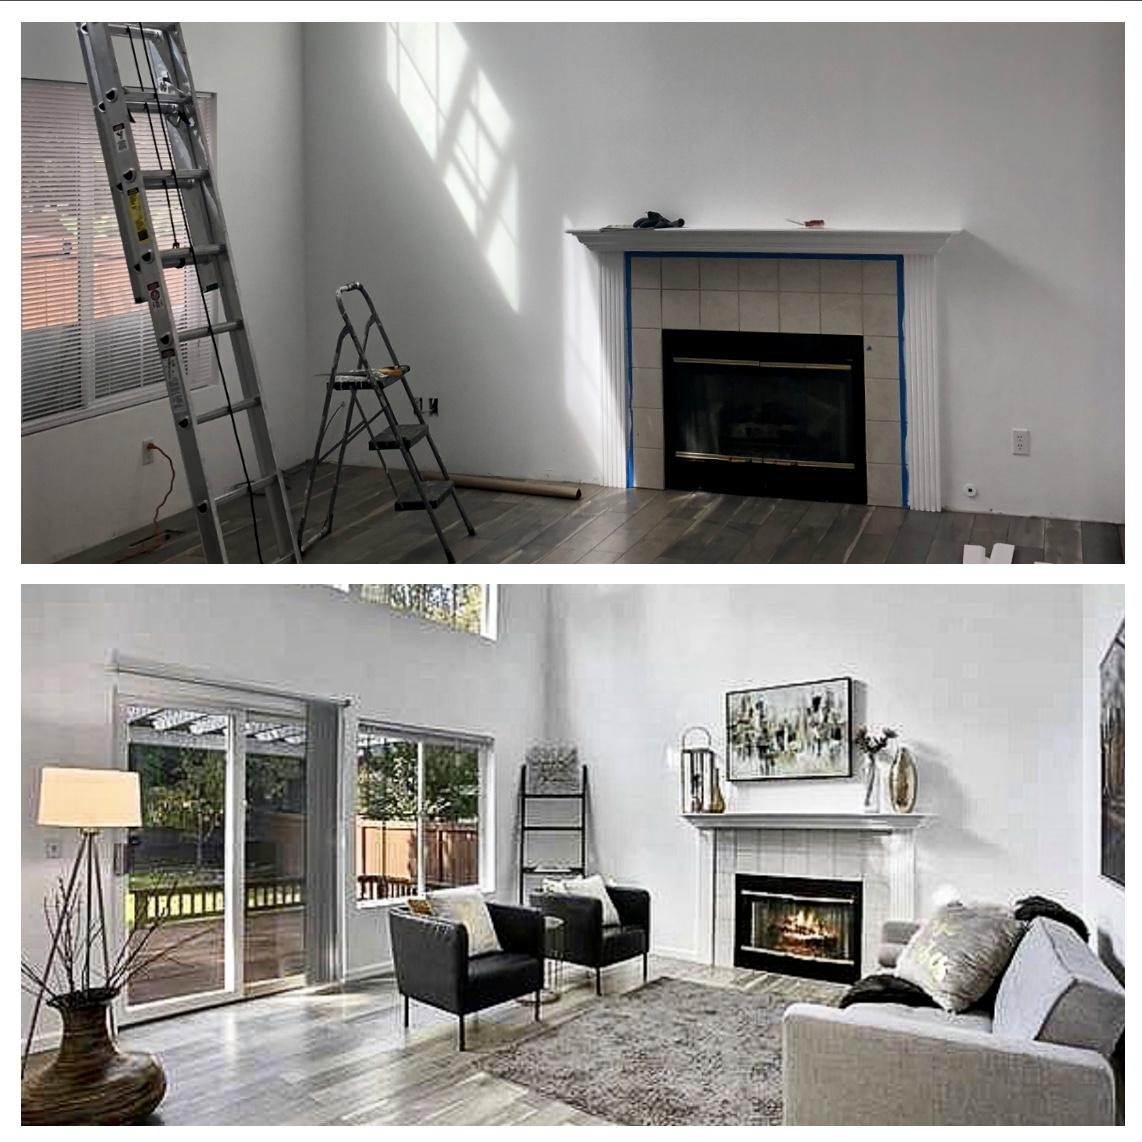 Before and after home staging at a low cost.